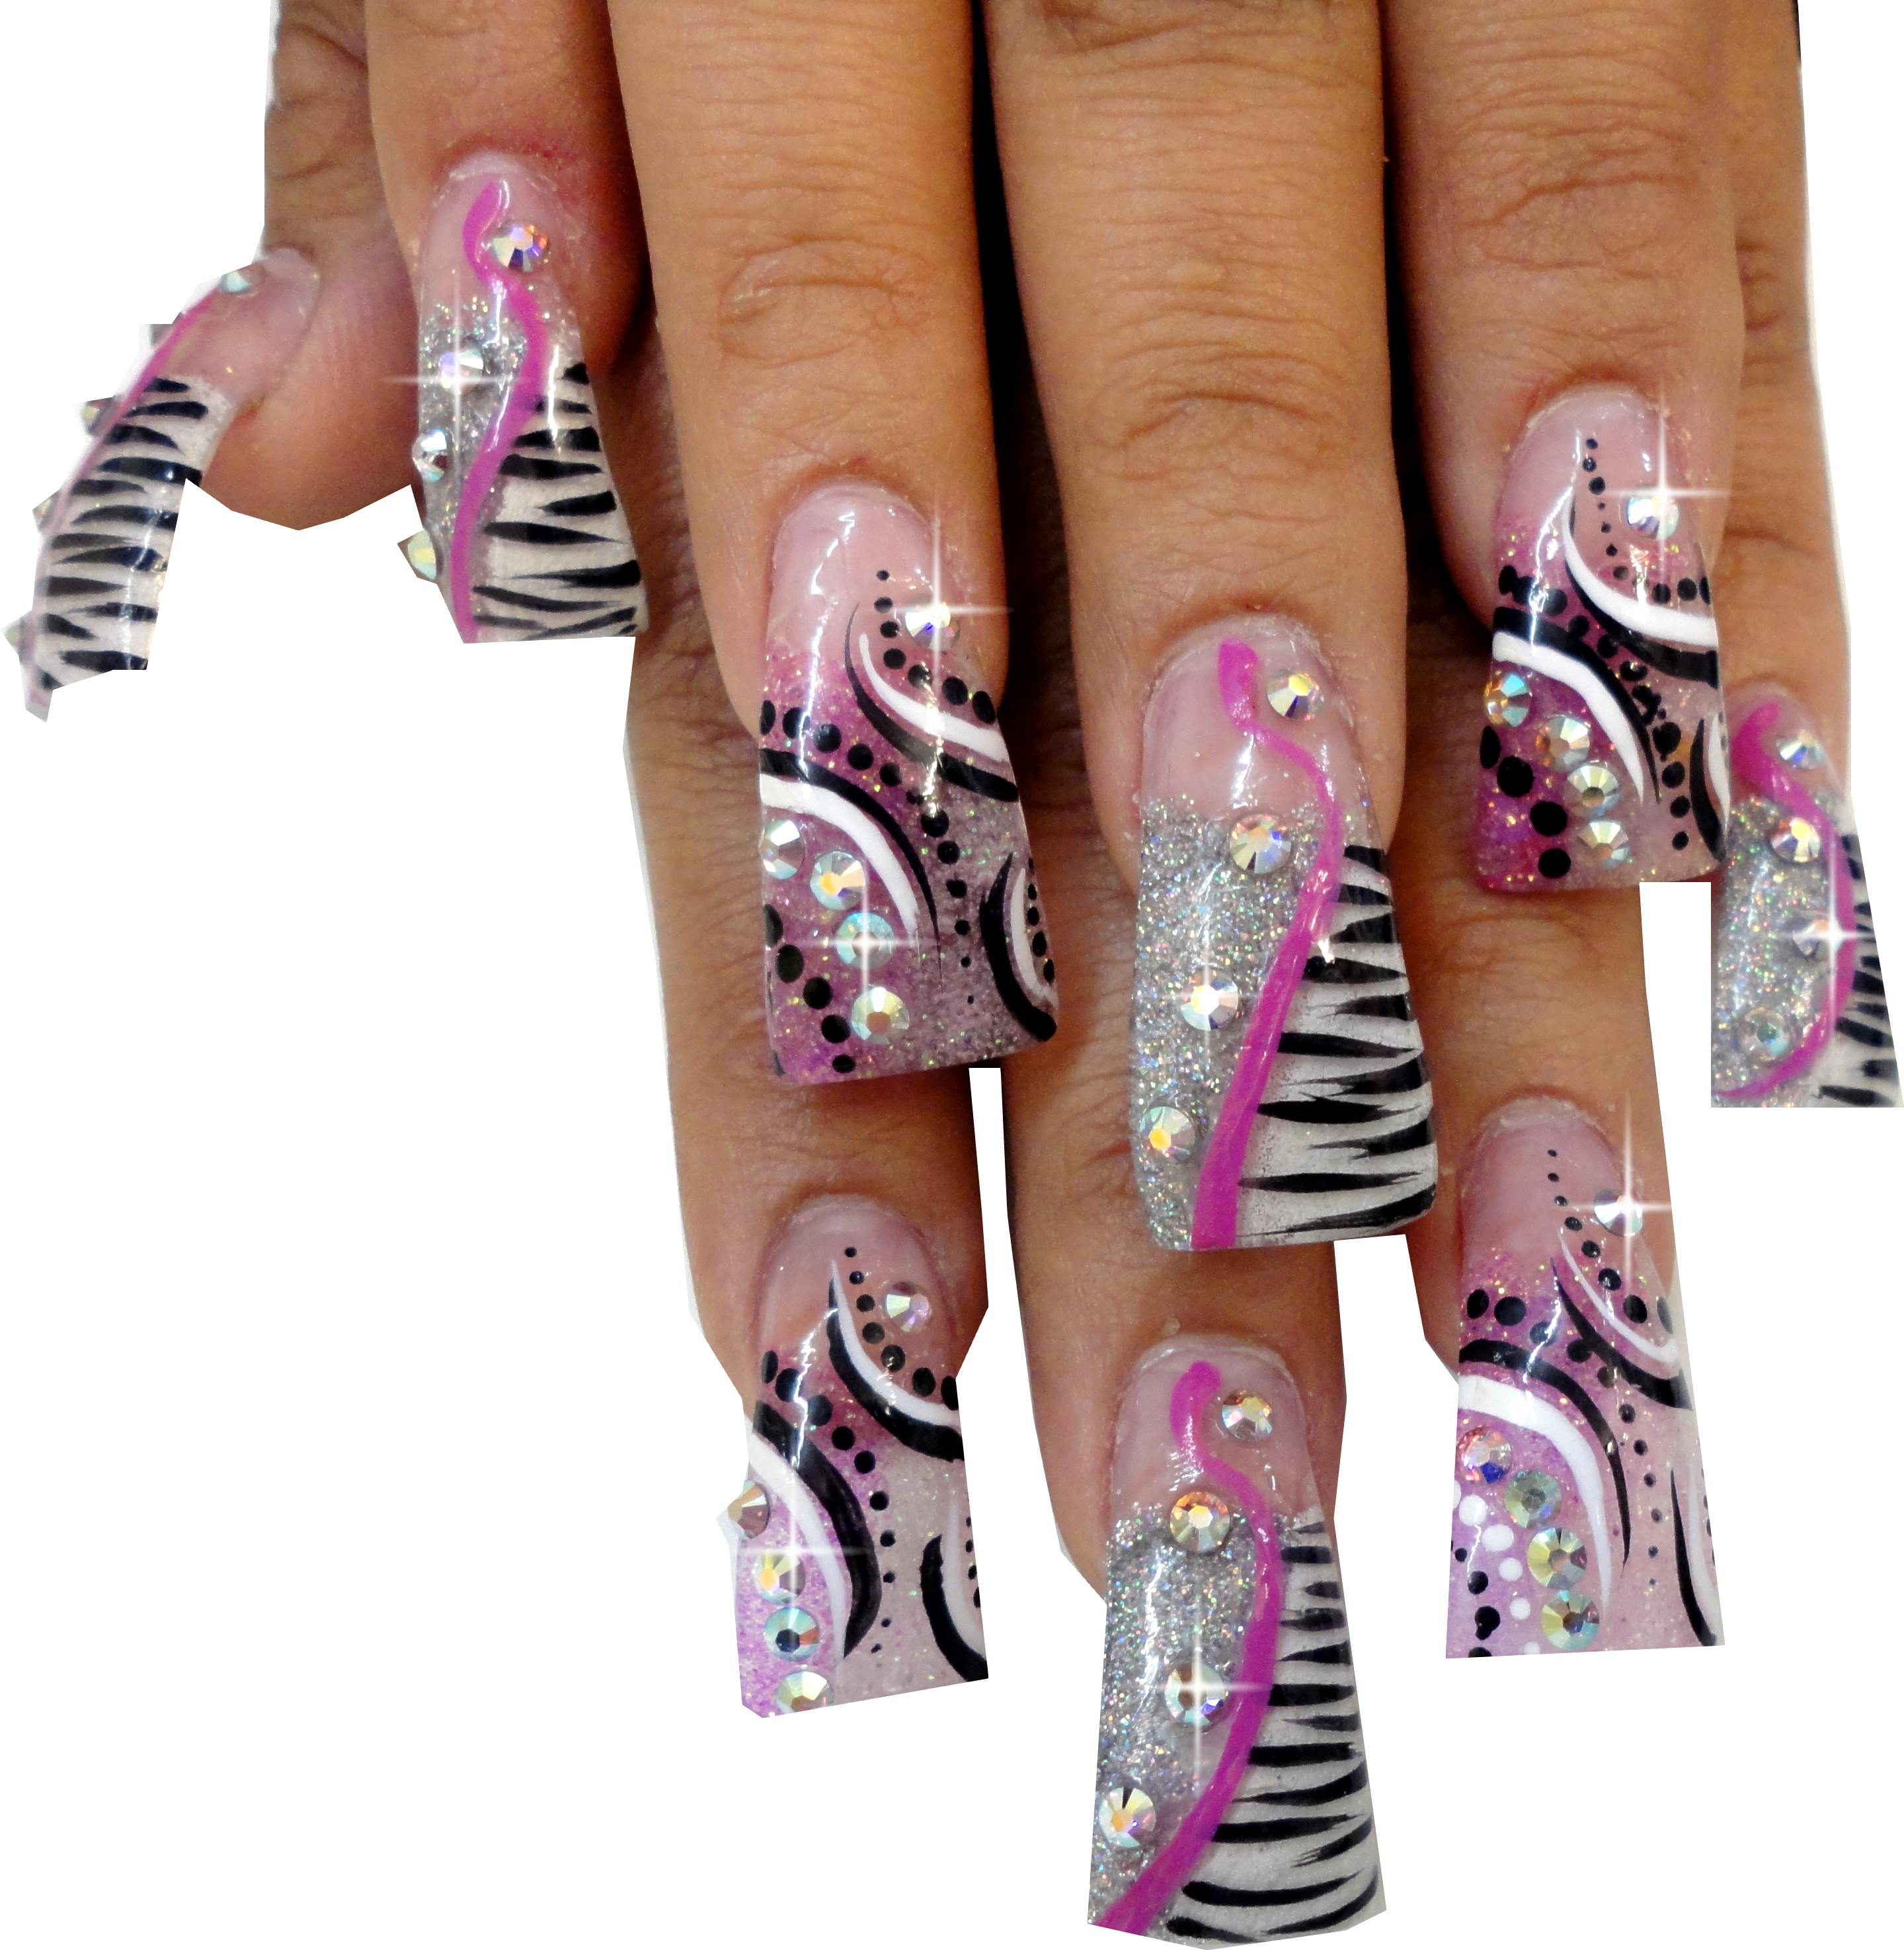 Nail Art Design By Erika Ortiz